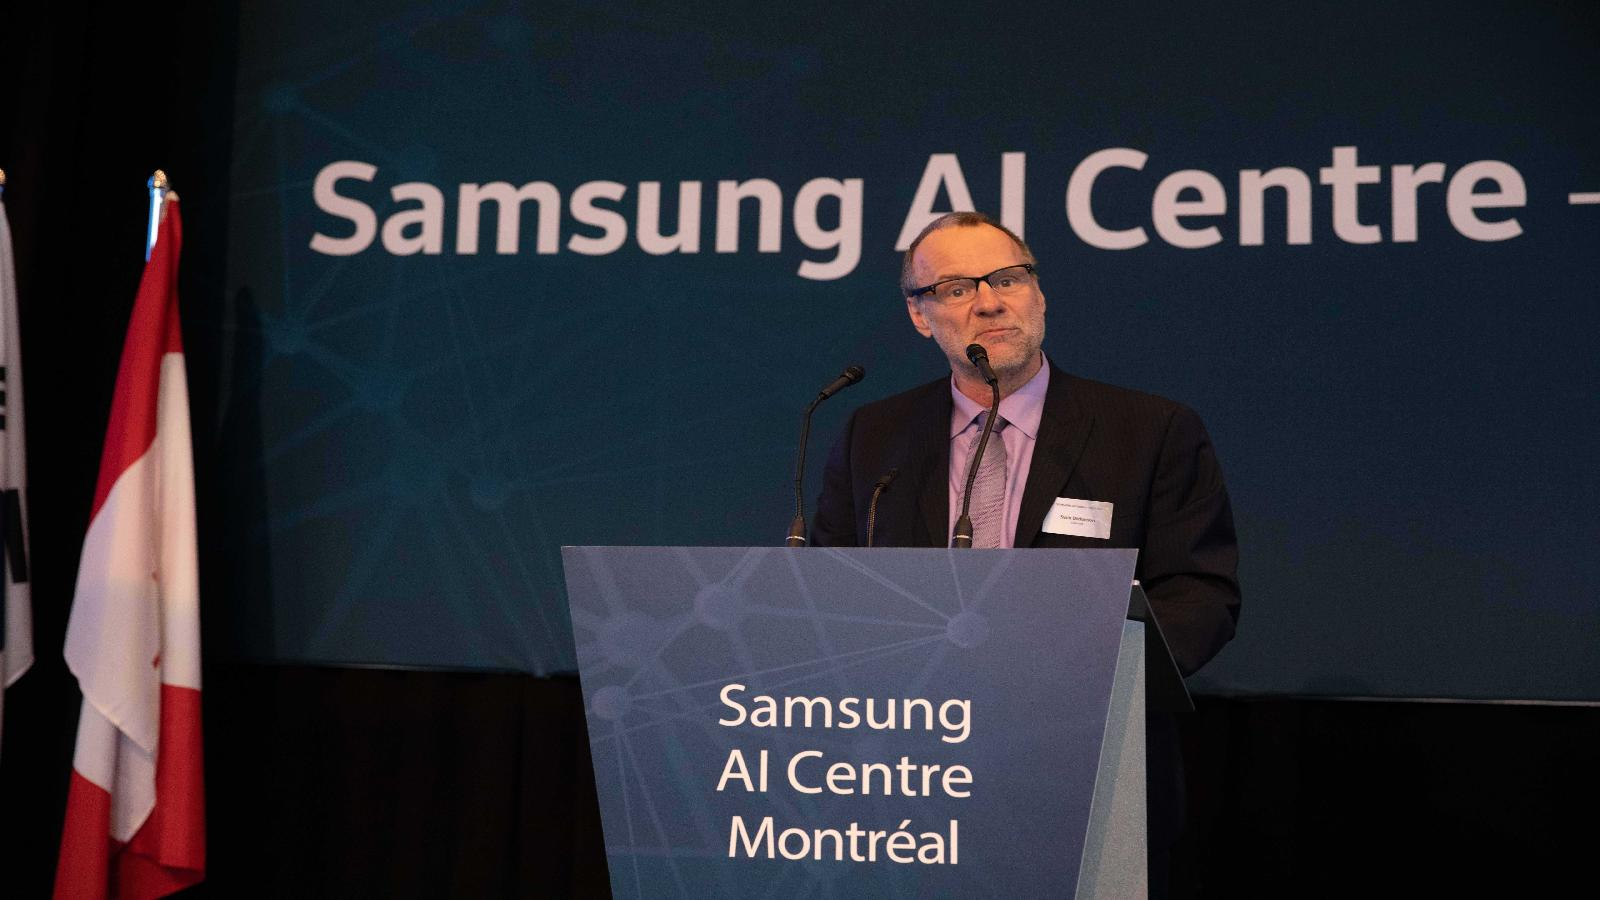 AI Center - Montreal